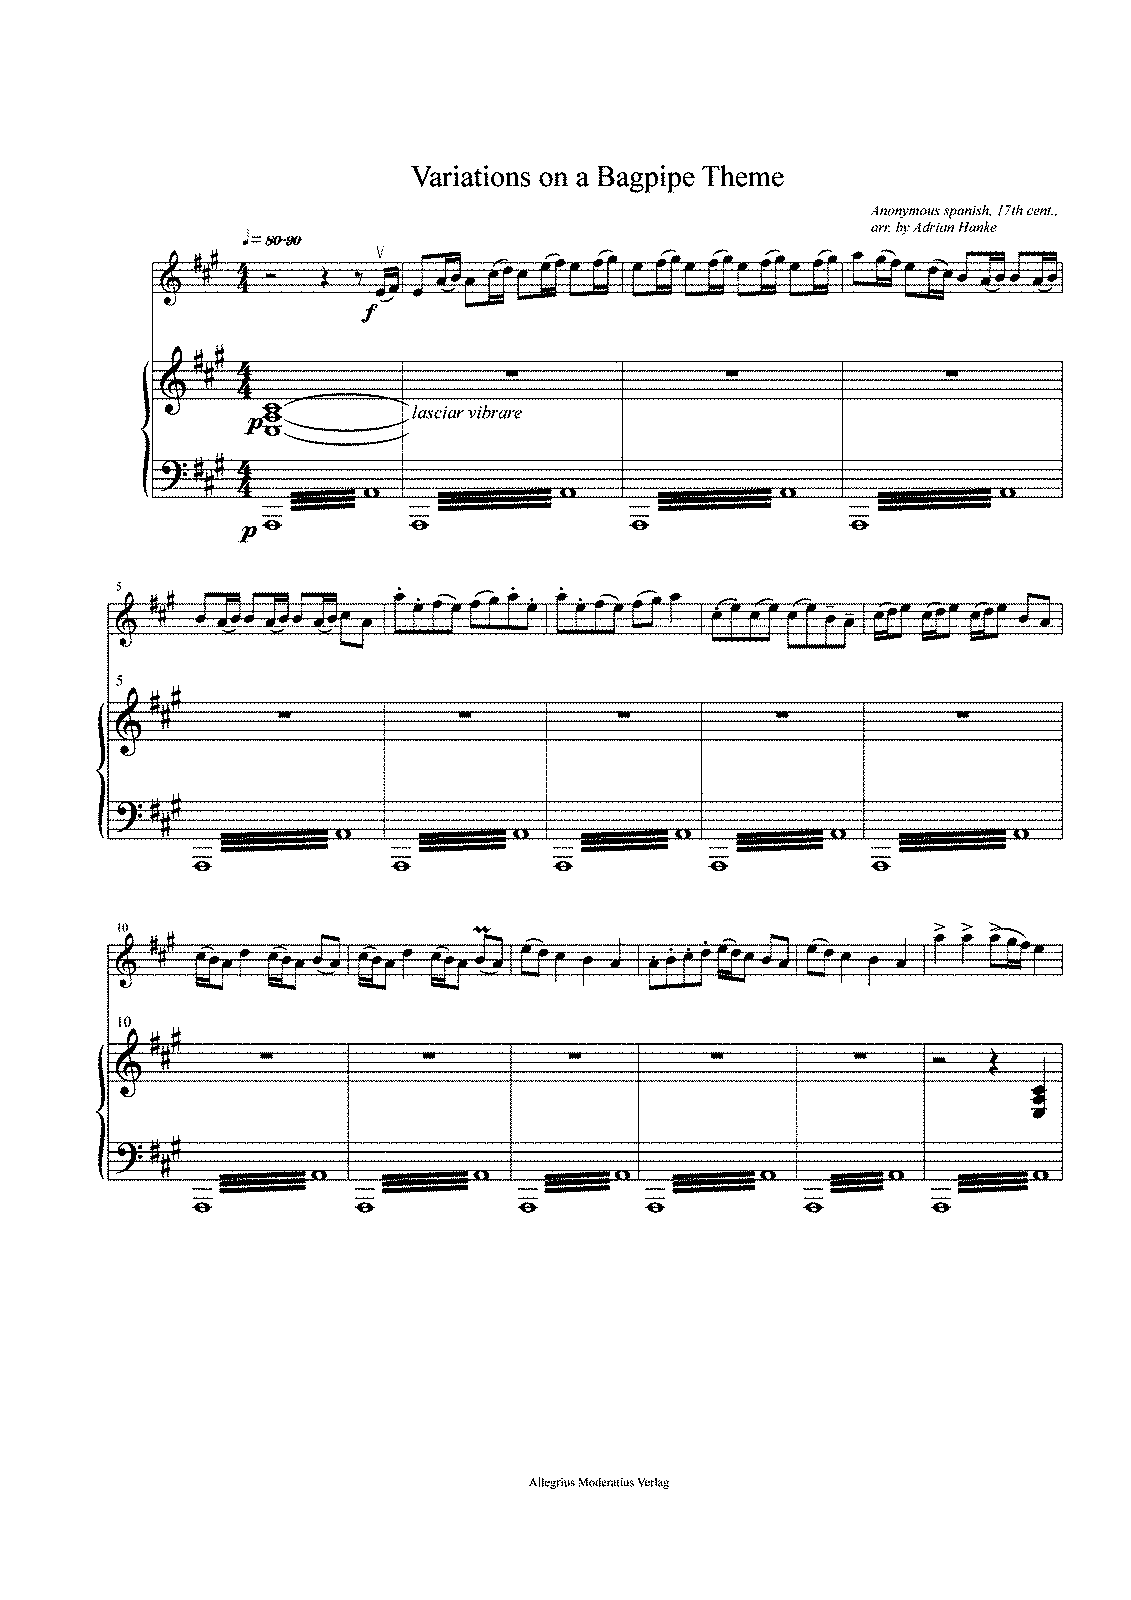 PMLP405239-Anonymous - Variations on a Bagpipe Theme - Piano Score.pdf